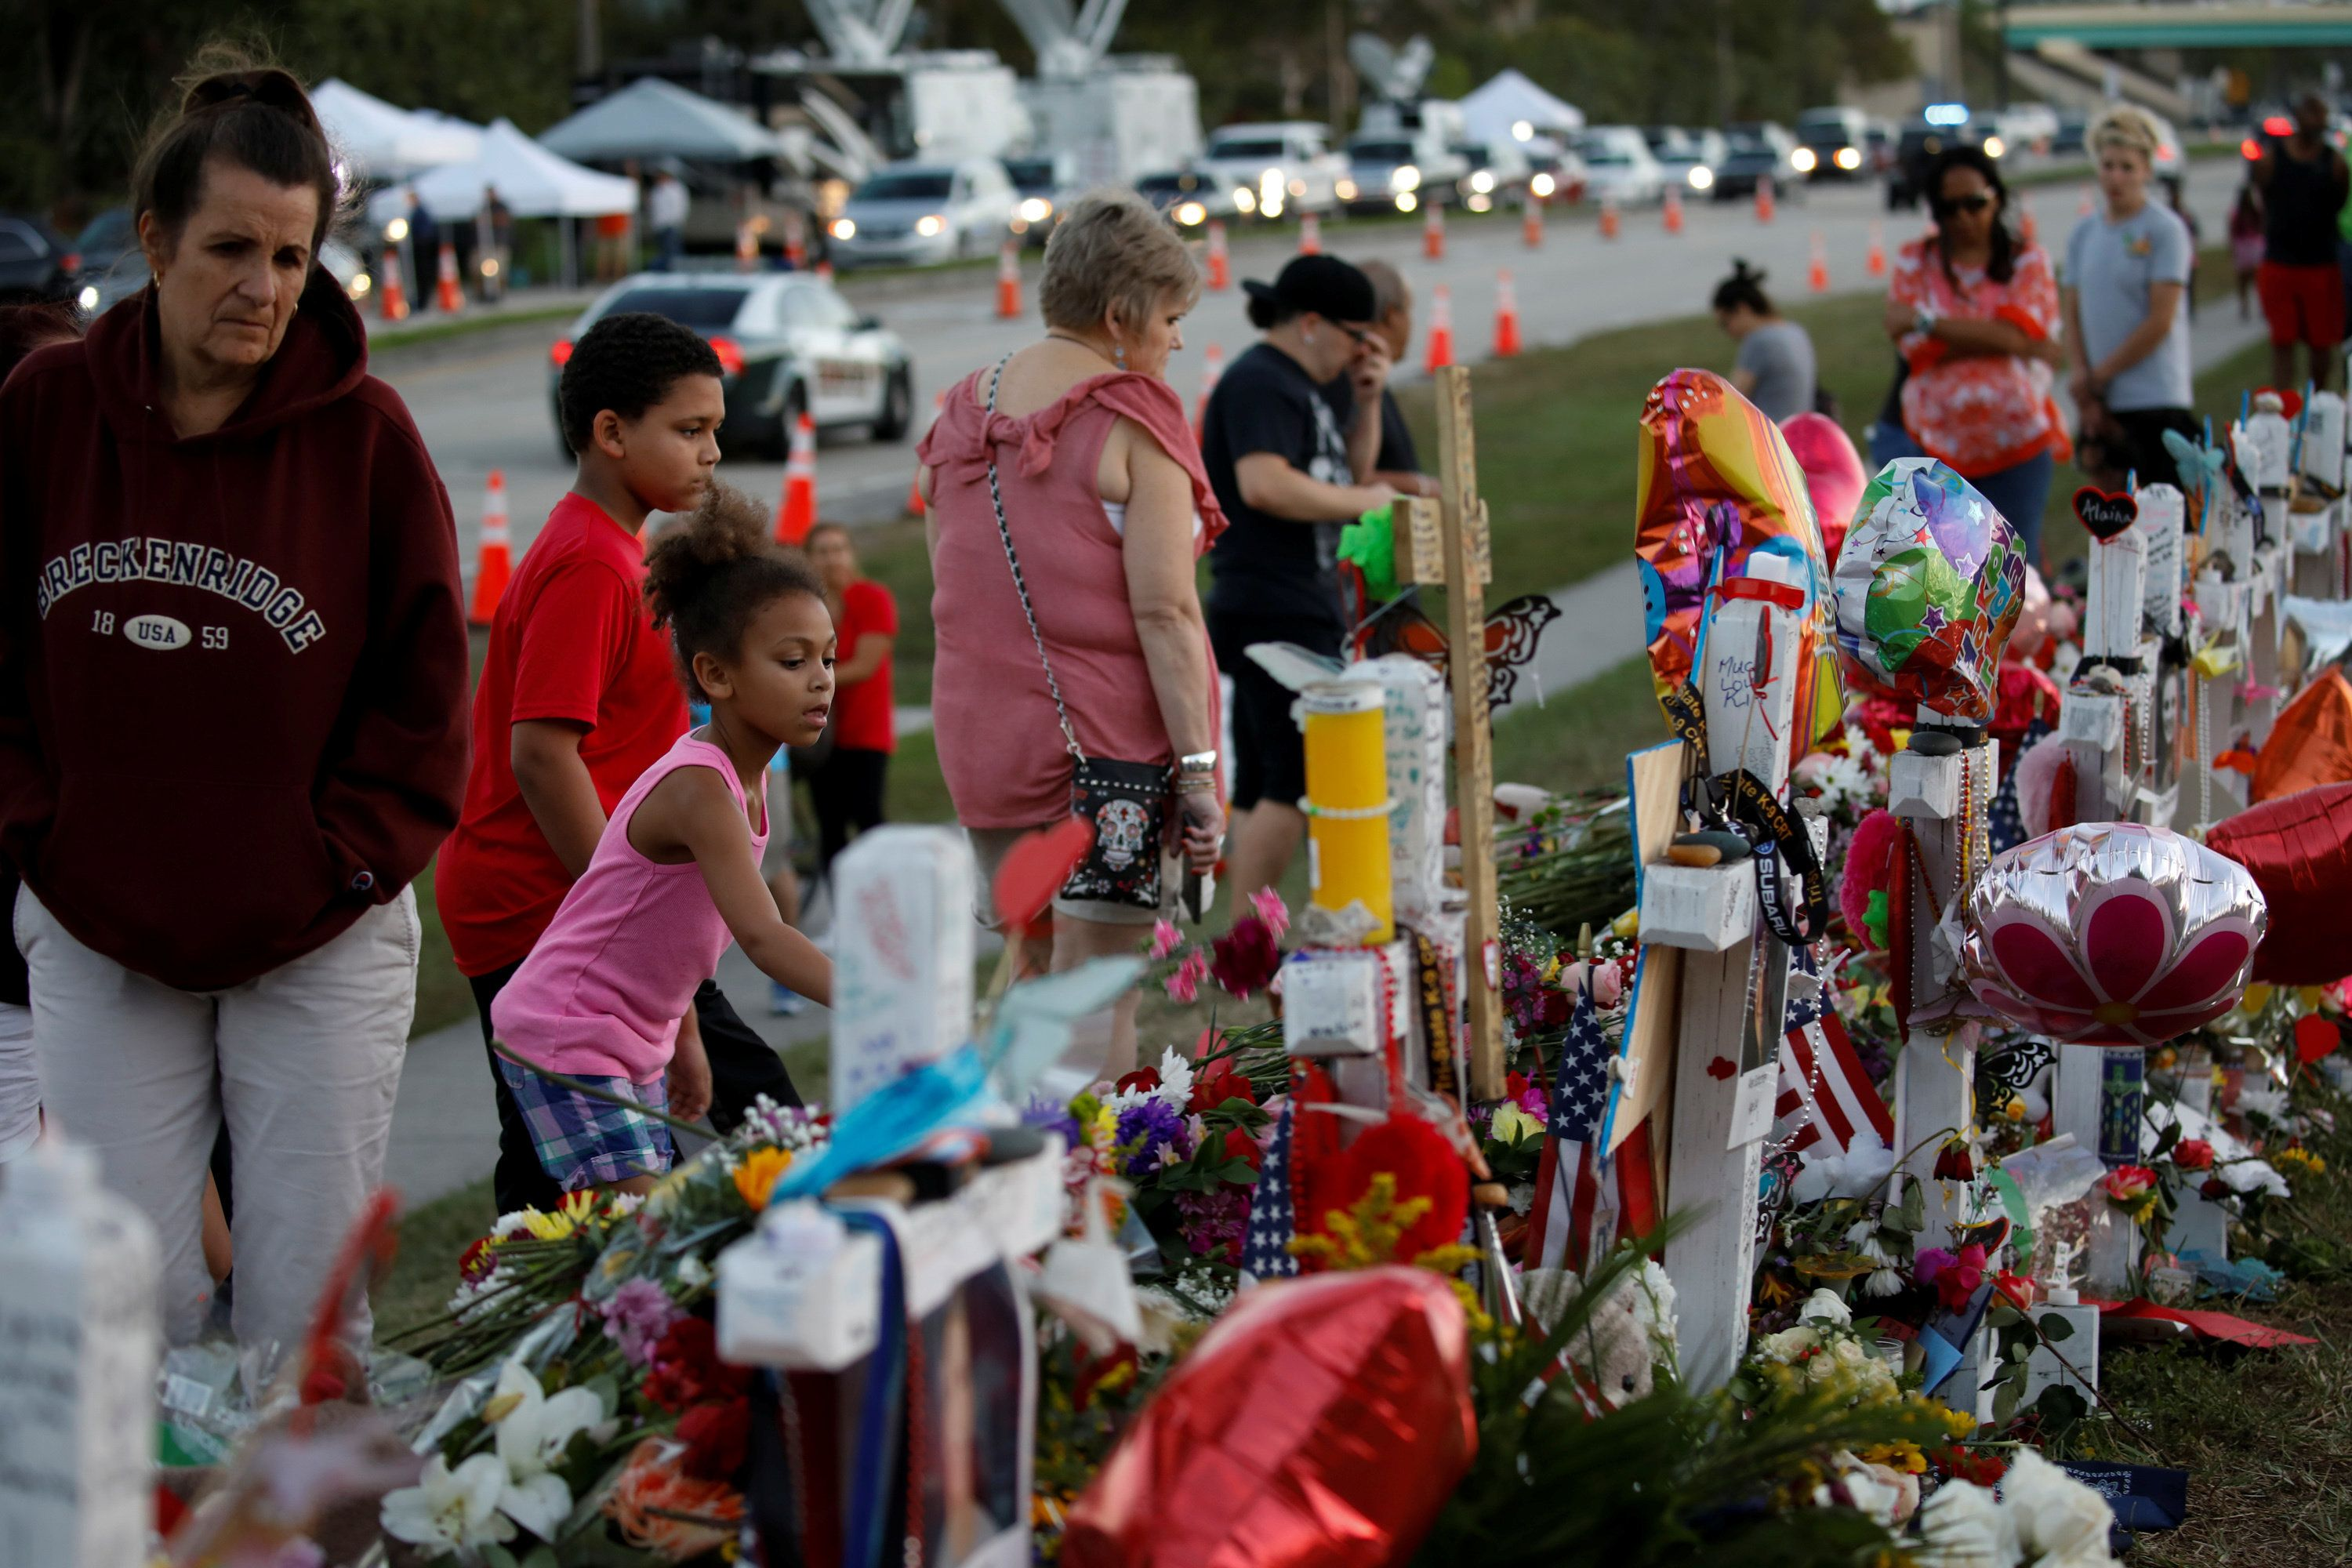 Trump calls sheriff's deputy a coward for failure to stop Florida shooter